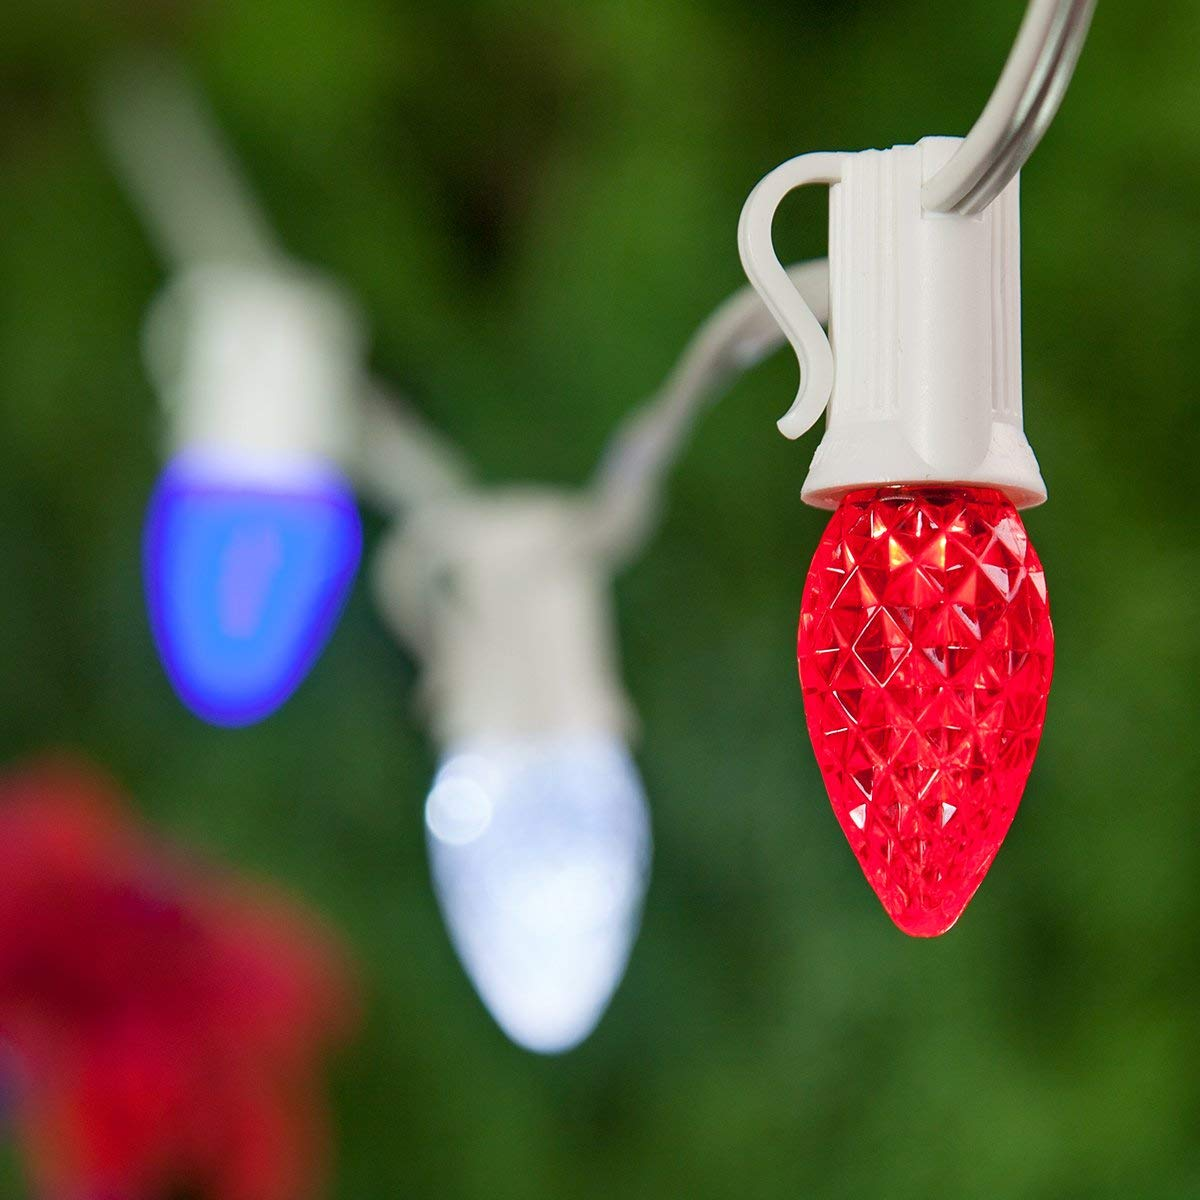 Outdoor Patriotic Lights - Red, White and Blue Lights - Patriotic Decorations, July 4 Decorations, Fourth of July Decorations (75 C7 OptiCore LED Patio Lights, 75 Ft, Red, White and Blue)